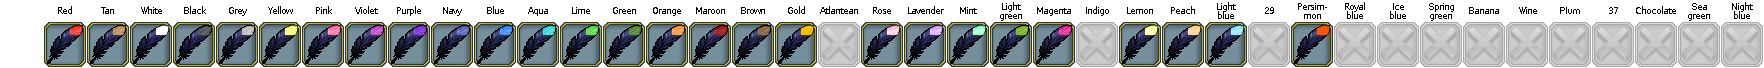 Colors-trinket-Raven's feather.png